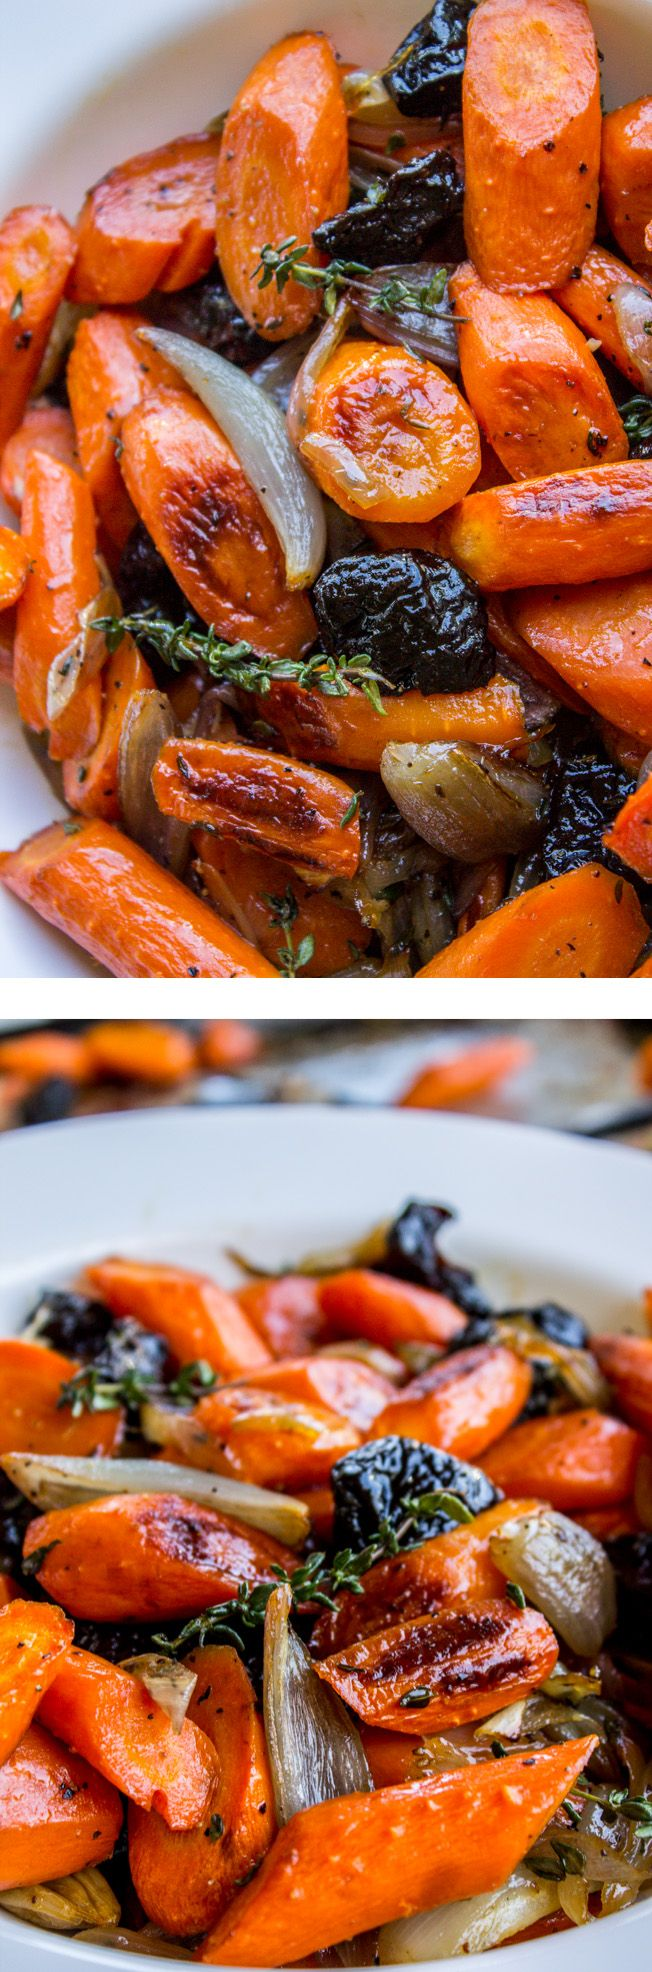 Apple Cider Roasted Carrots with Plums from The Food Charlatan. These tender carrots are roasted in apple cider sweetness that gives them an incredible glaze! Halfway through roasting, add a handful of dried plums. It's an awesome combo and perfect with the turkey and gravy on your Thanksgiving plate! #Thanksgiving #carrots #shallots #prunes #sidedish #roasted